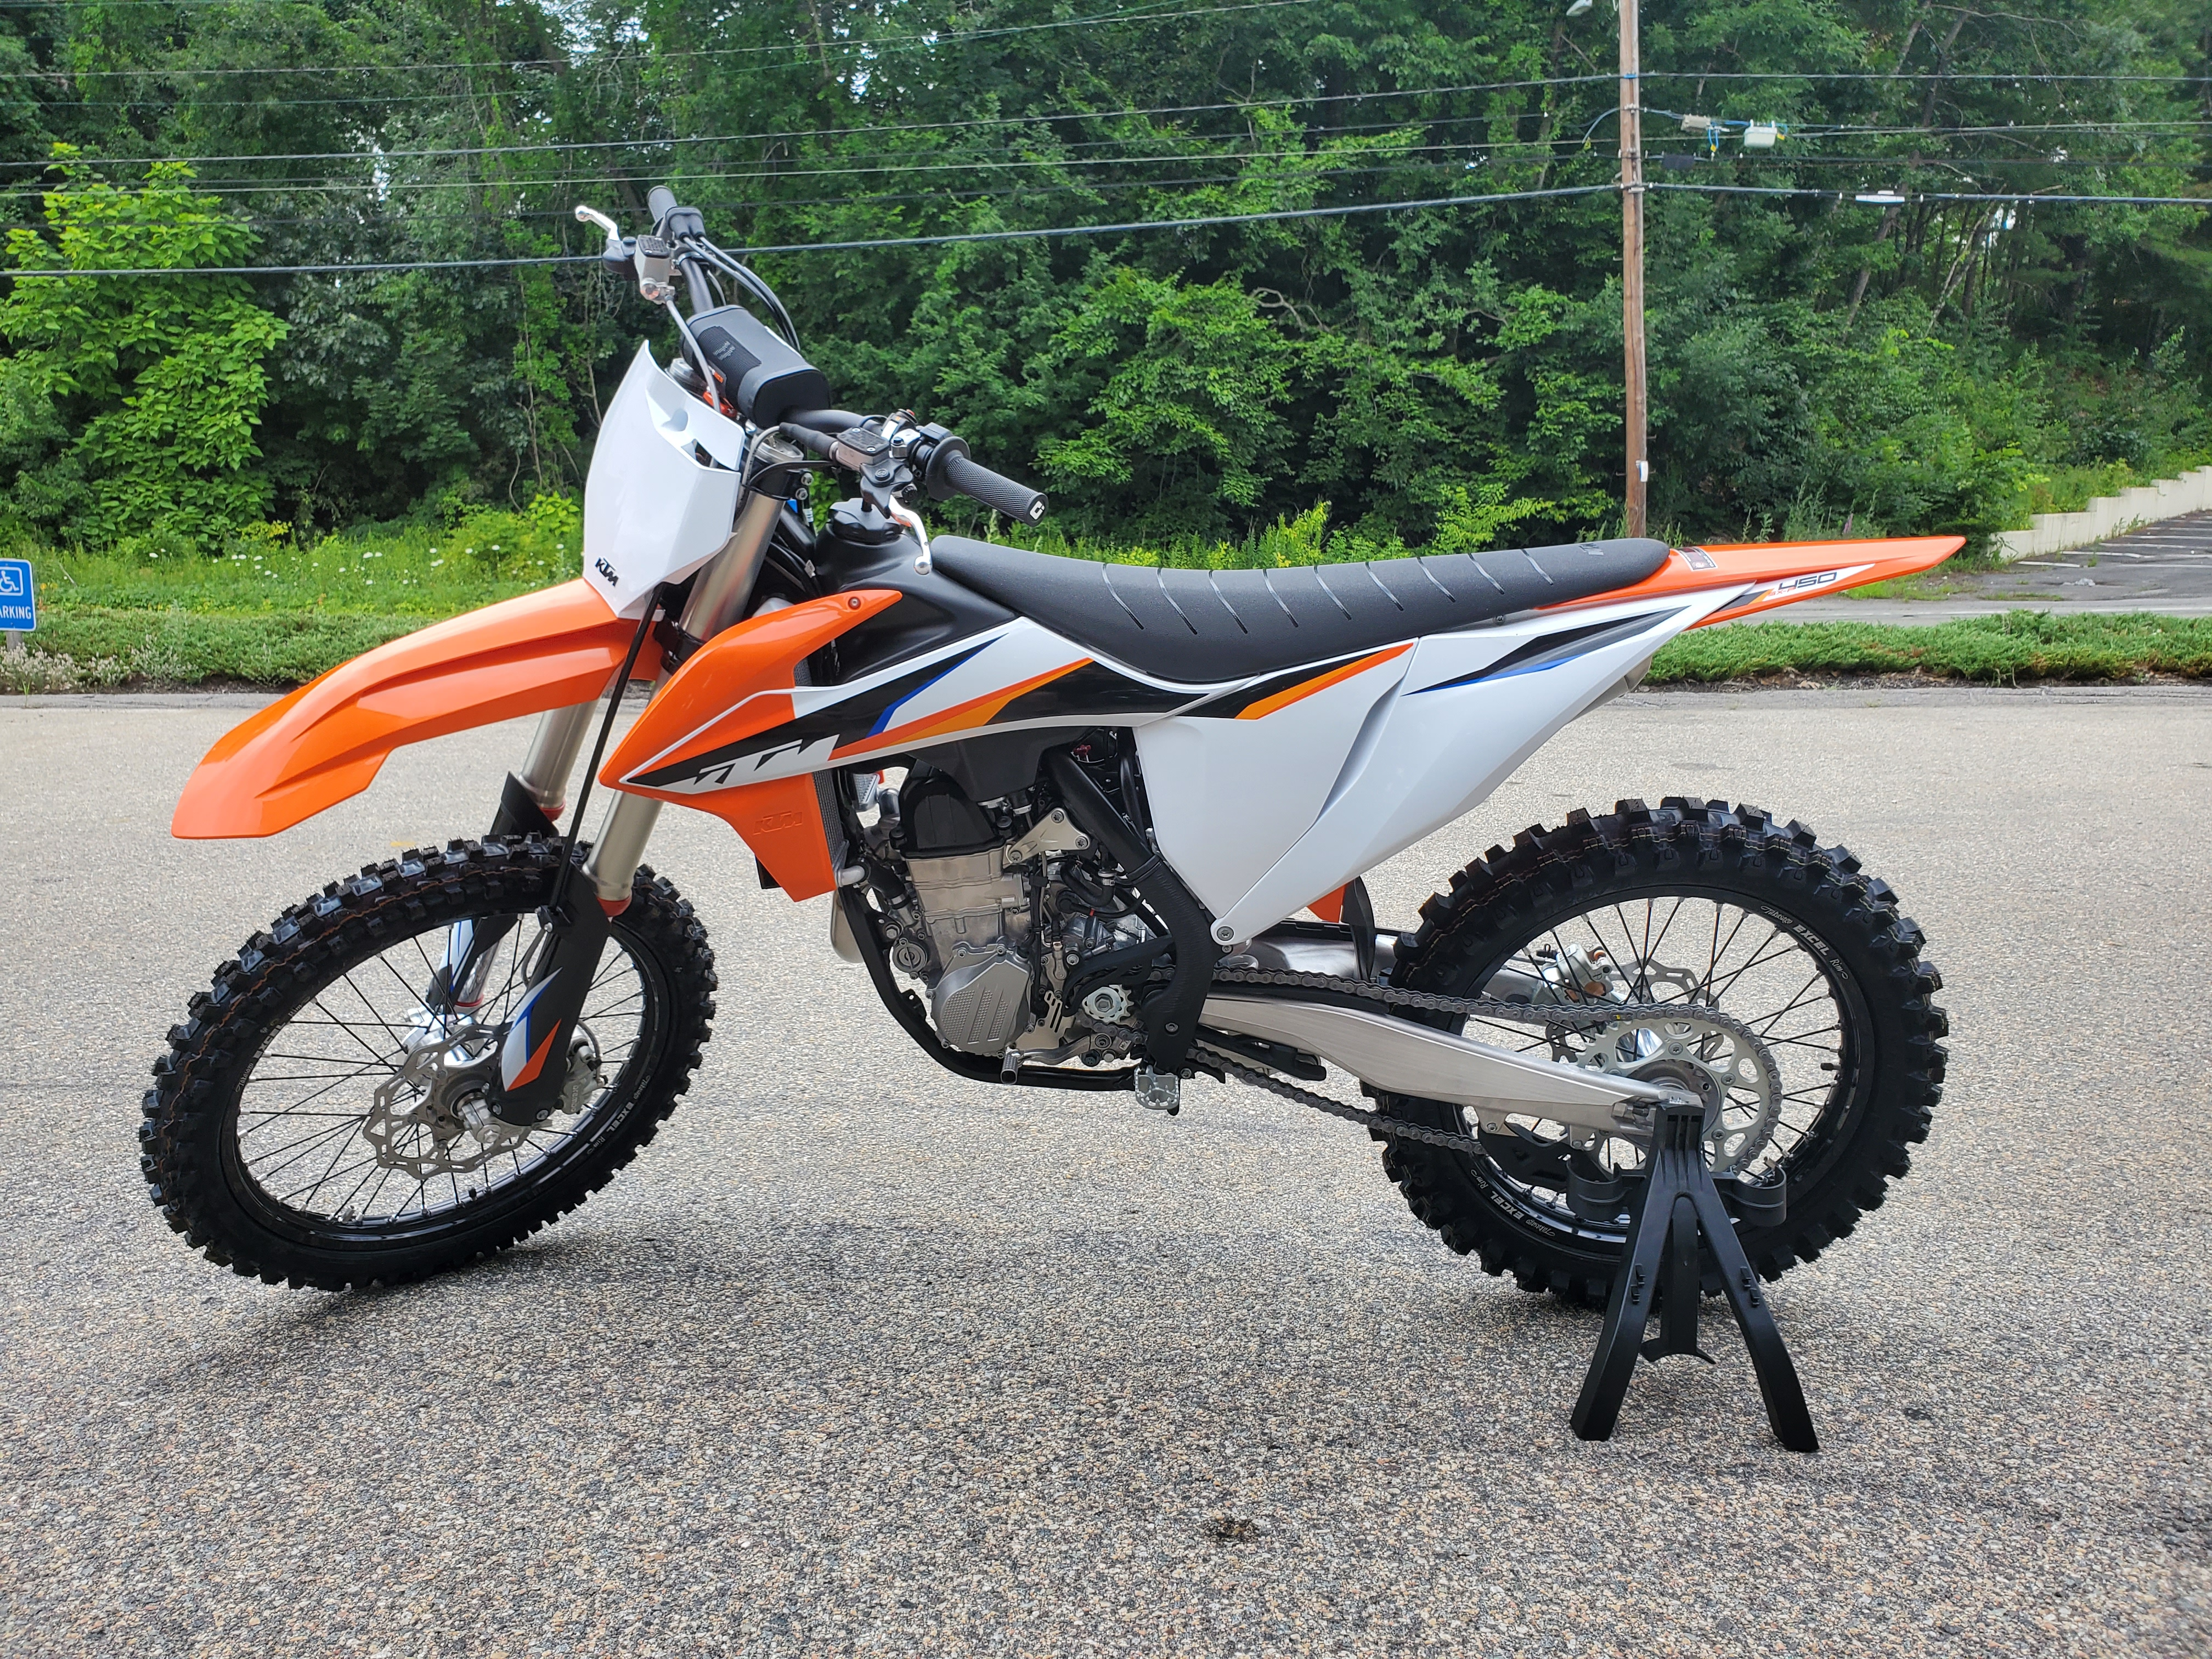 2021 Ktm 450 Sx F For Sale In Tyngsboro Ma Indian Motorcycle Of North Boston Tyngsboro Ma 978 251 0747